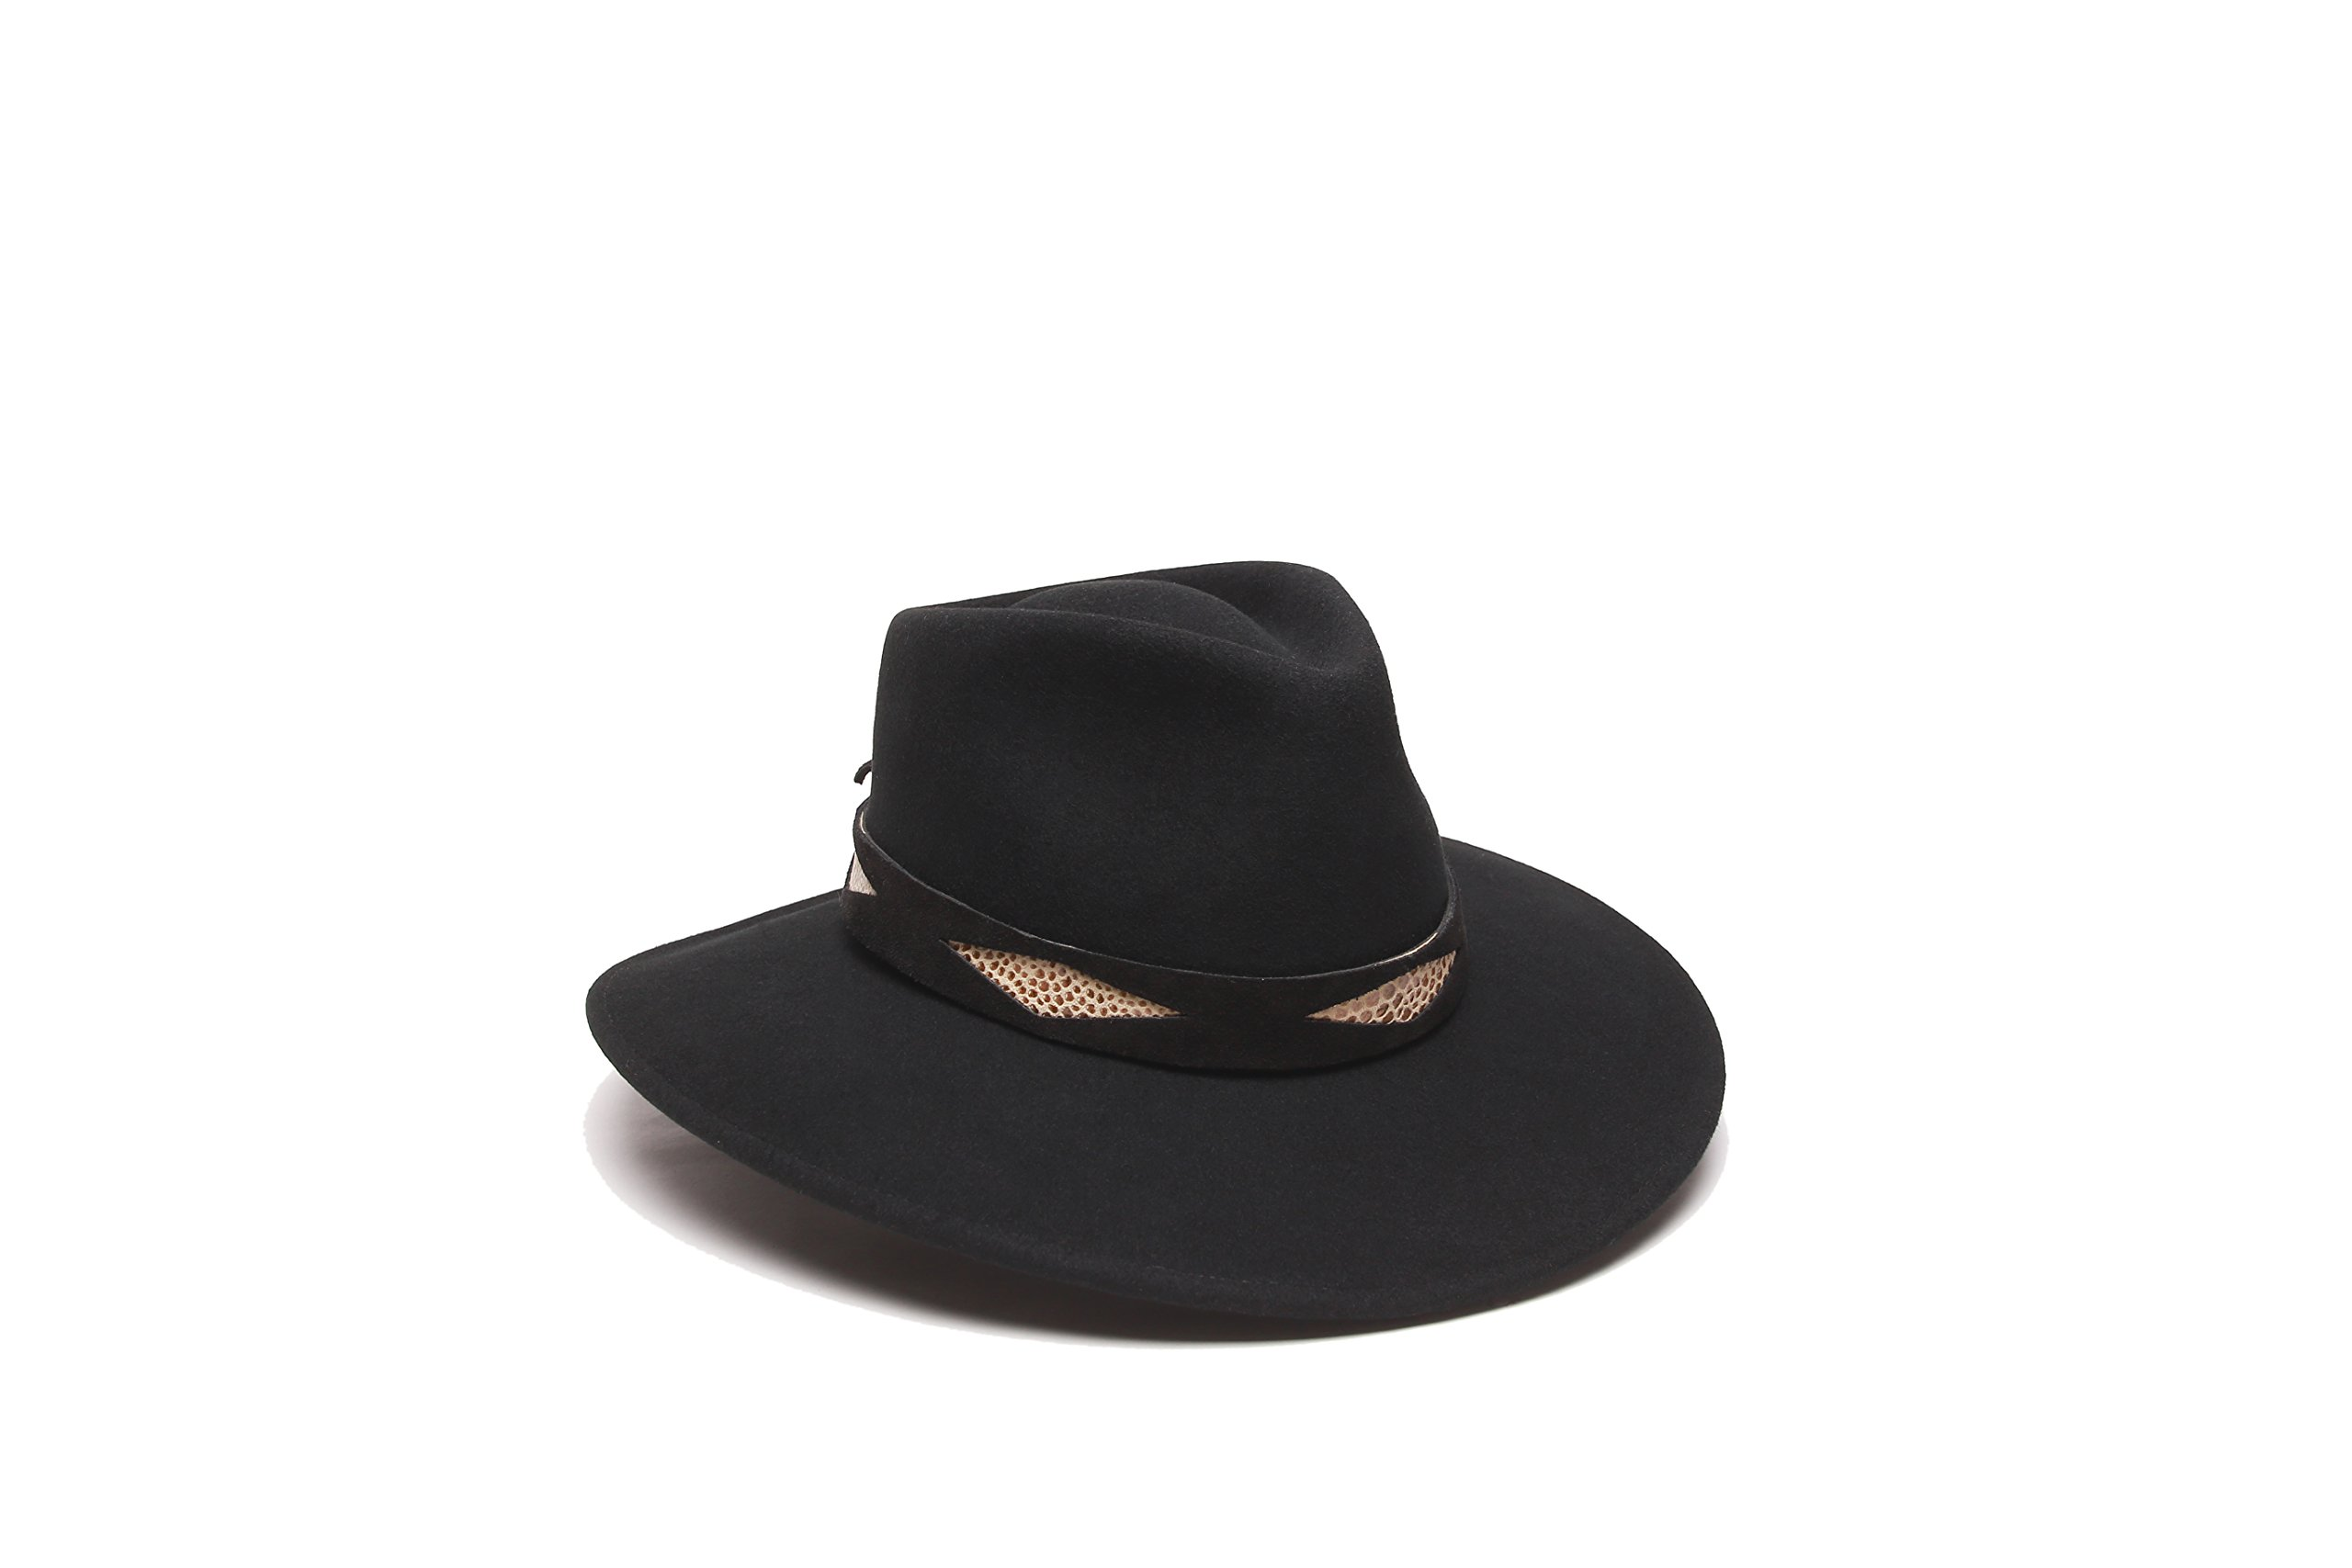 'ale by alessandra Women's Cobra Adjustable Felt Hat With Suede Trim, Black, Adjustable Head Size by ale by Alessandra